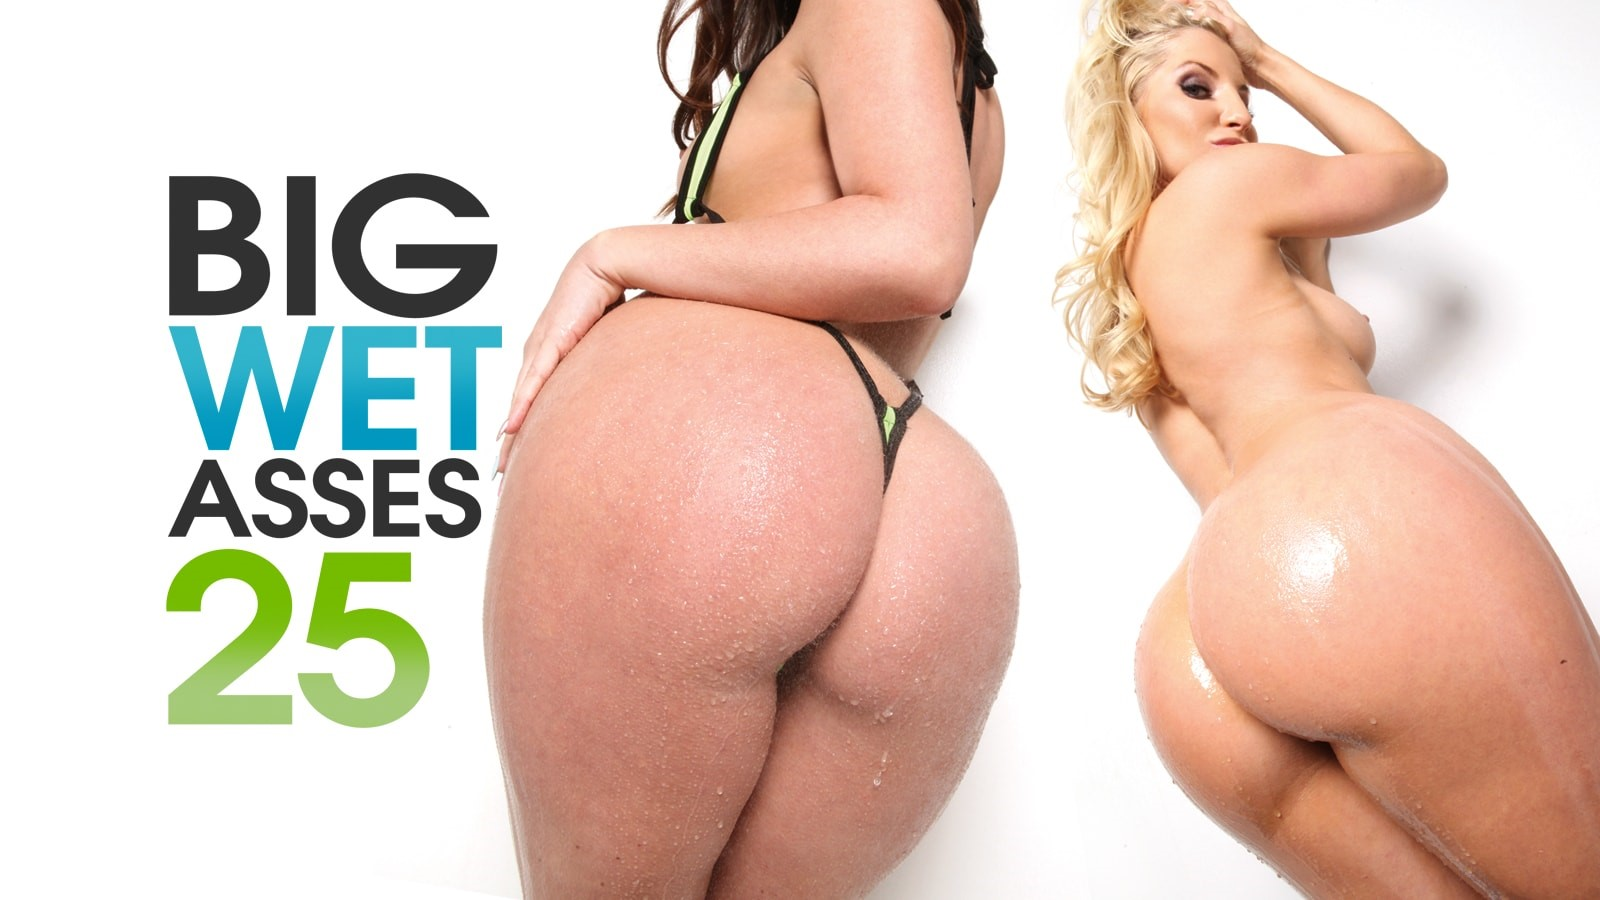 big wet asses #25 streaming video at elegant angel membership